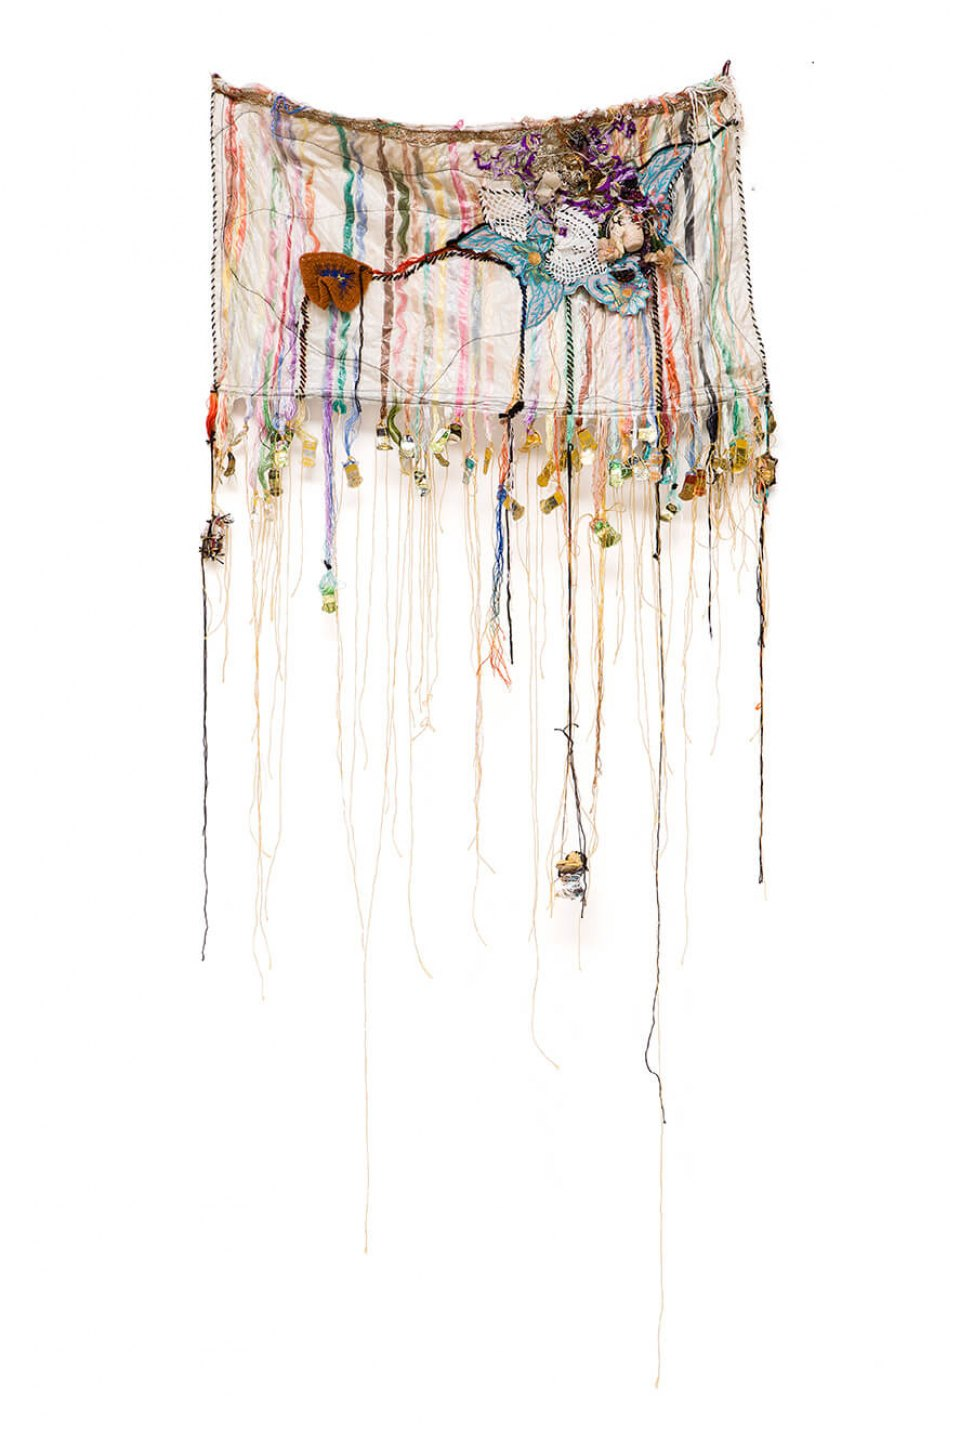 Sonia Gomes, <em>untitled</em>, 2016, stitching, bindings, different fabrics and laces, 126 × 82 cm - Mendes Wood DM